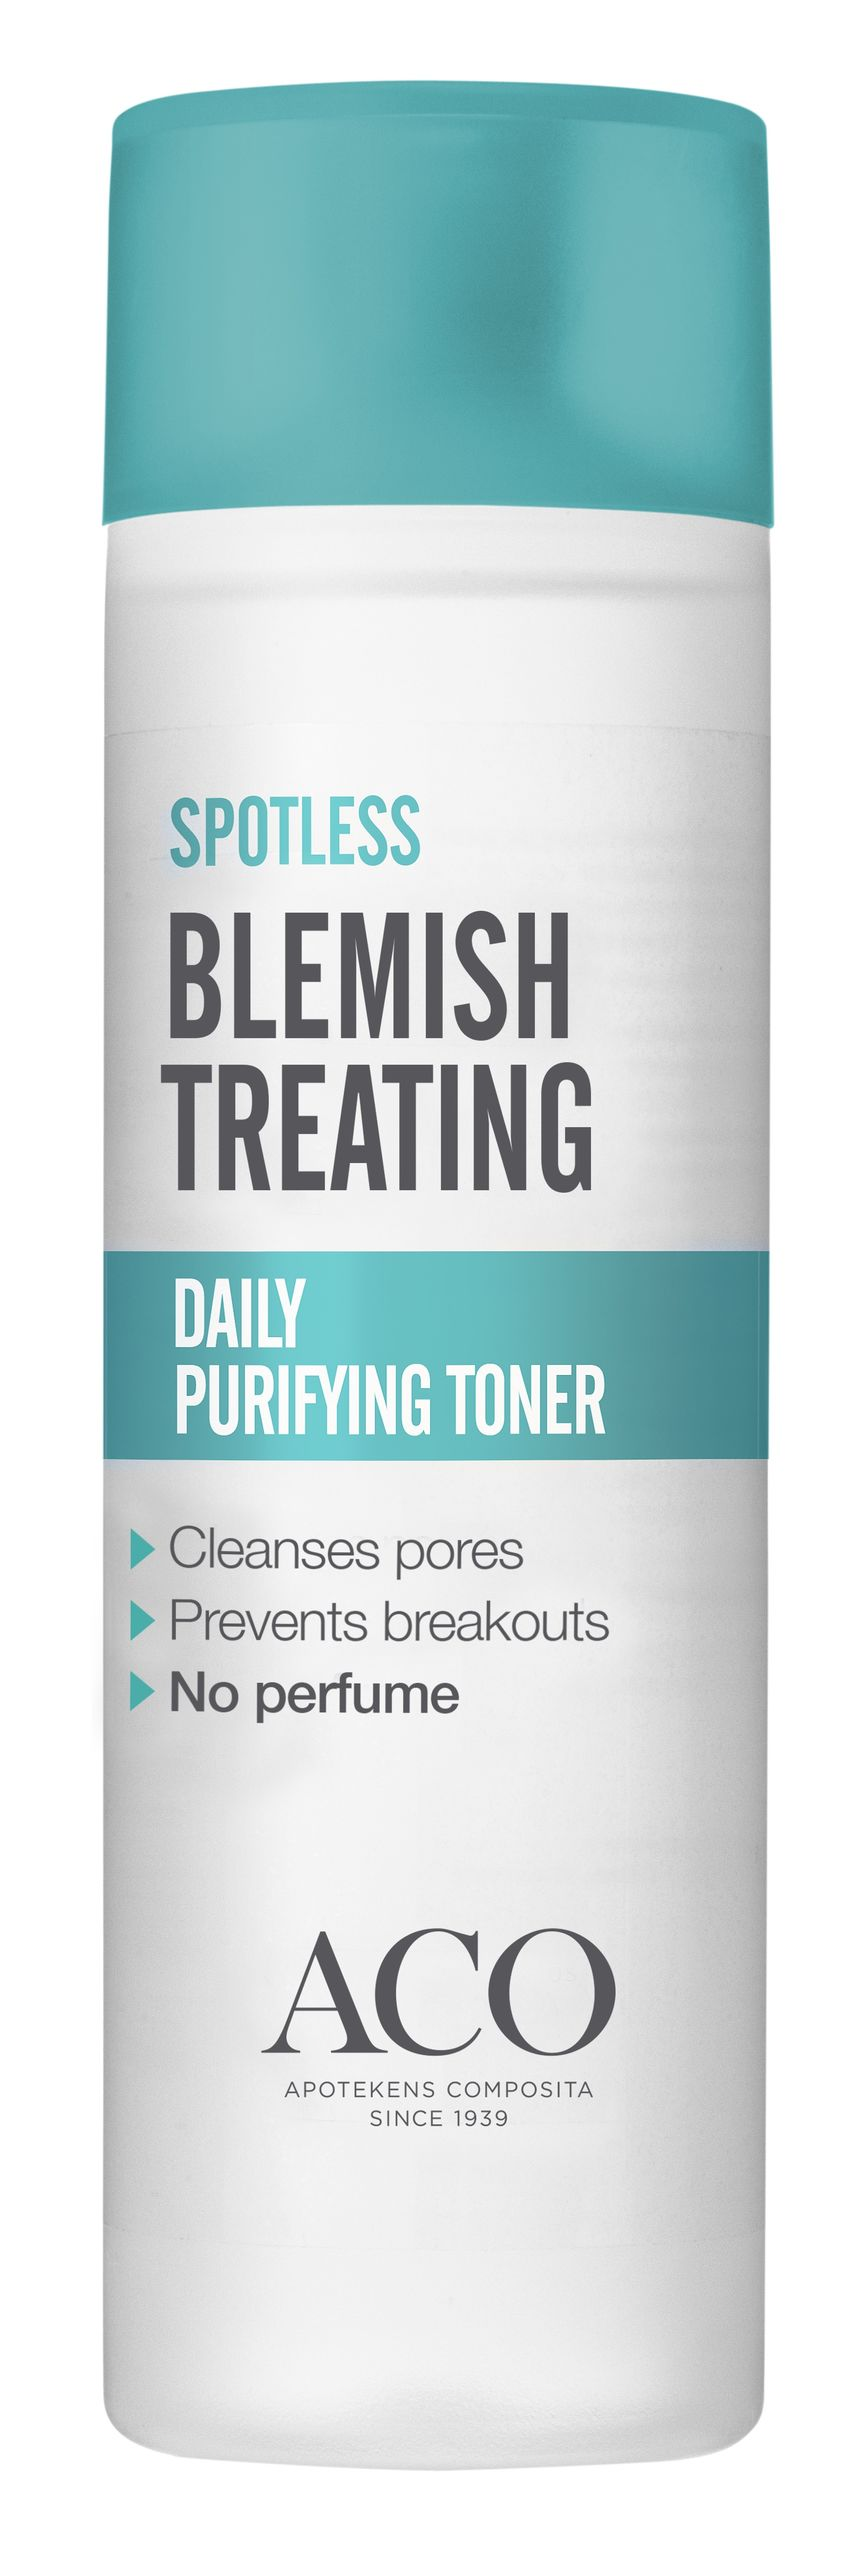 ACO Spotless Daily Purifying Toner 200ml